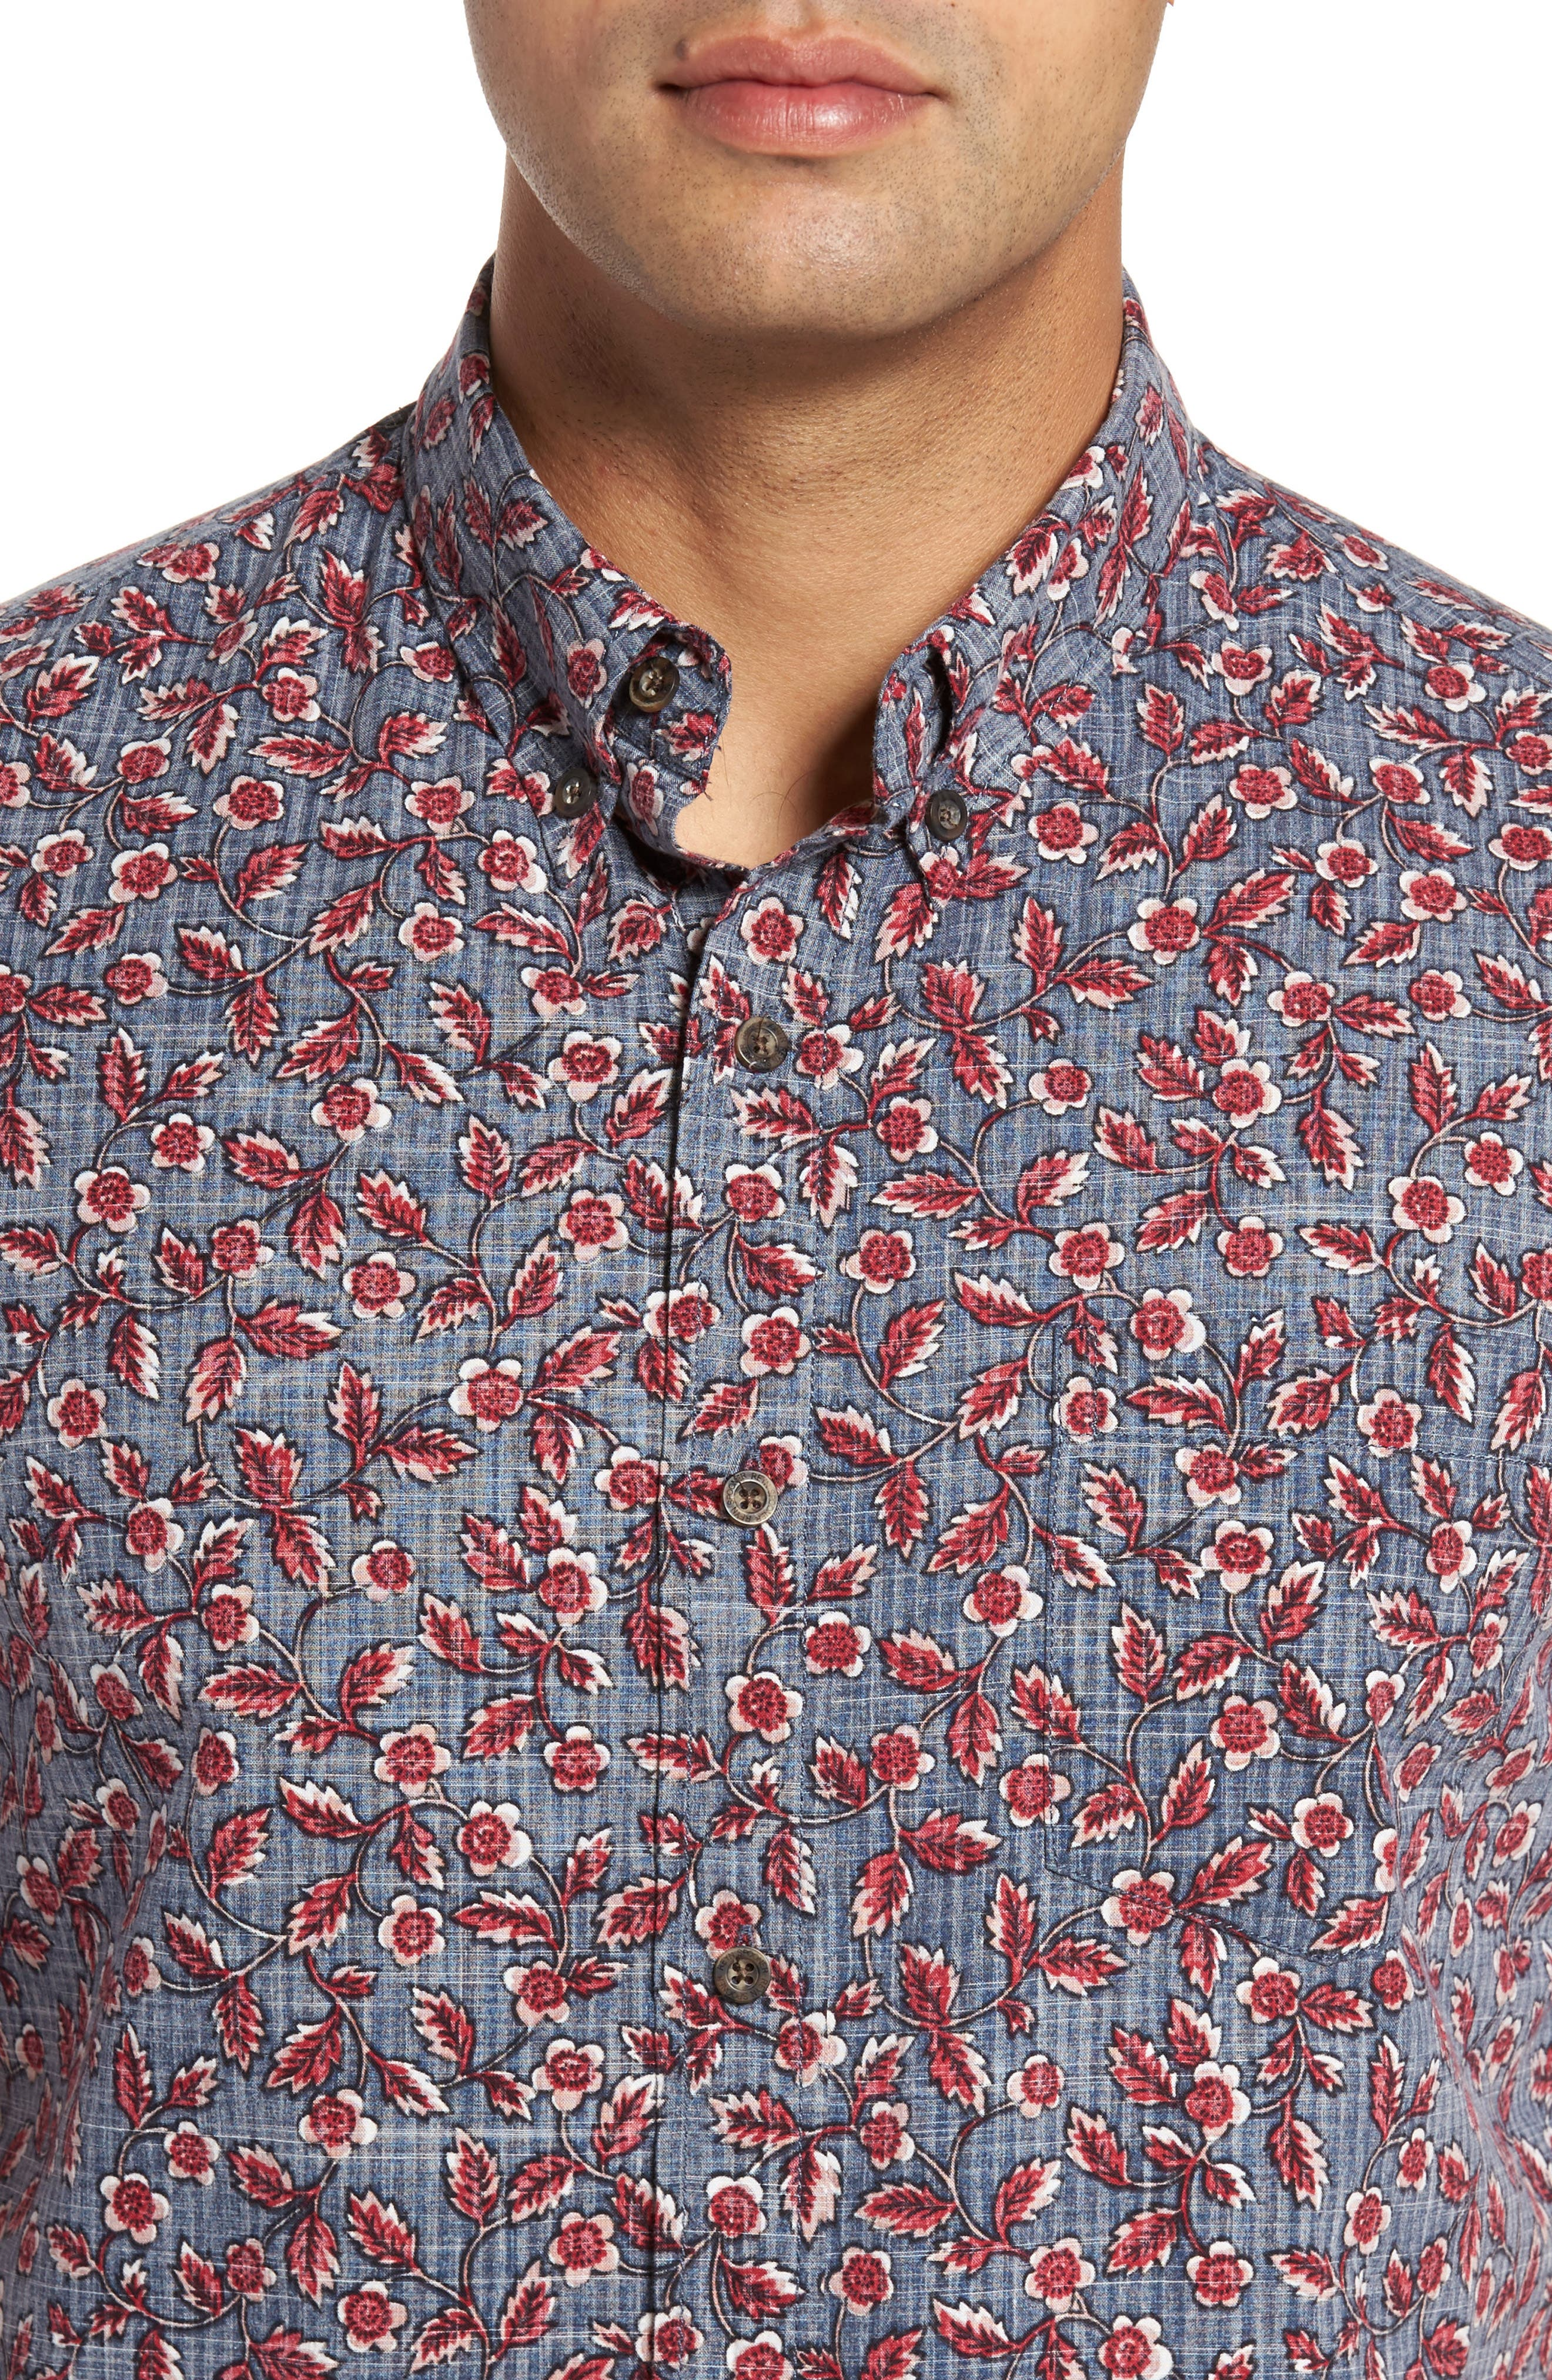 Upcountry Floral Regular Fit Sport Shirt,                             Alternate thumbnail 4, color,                             410